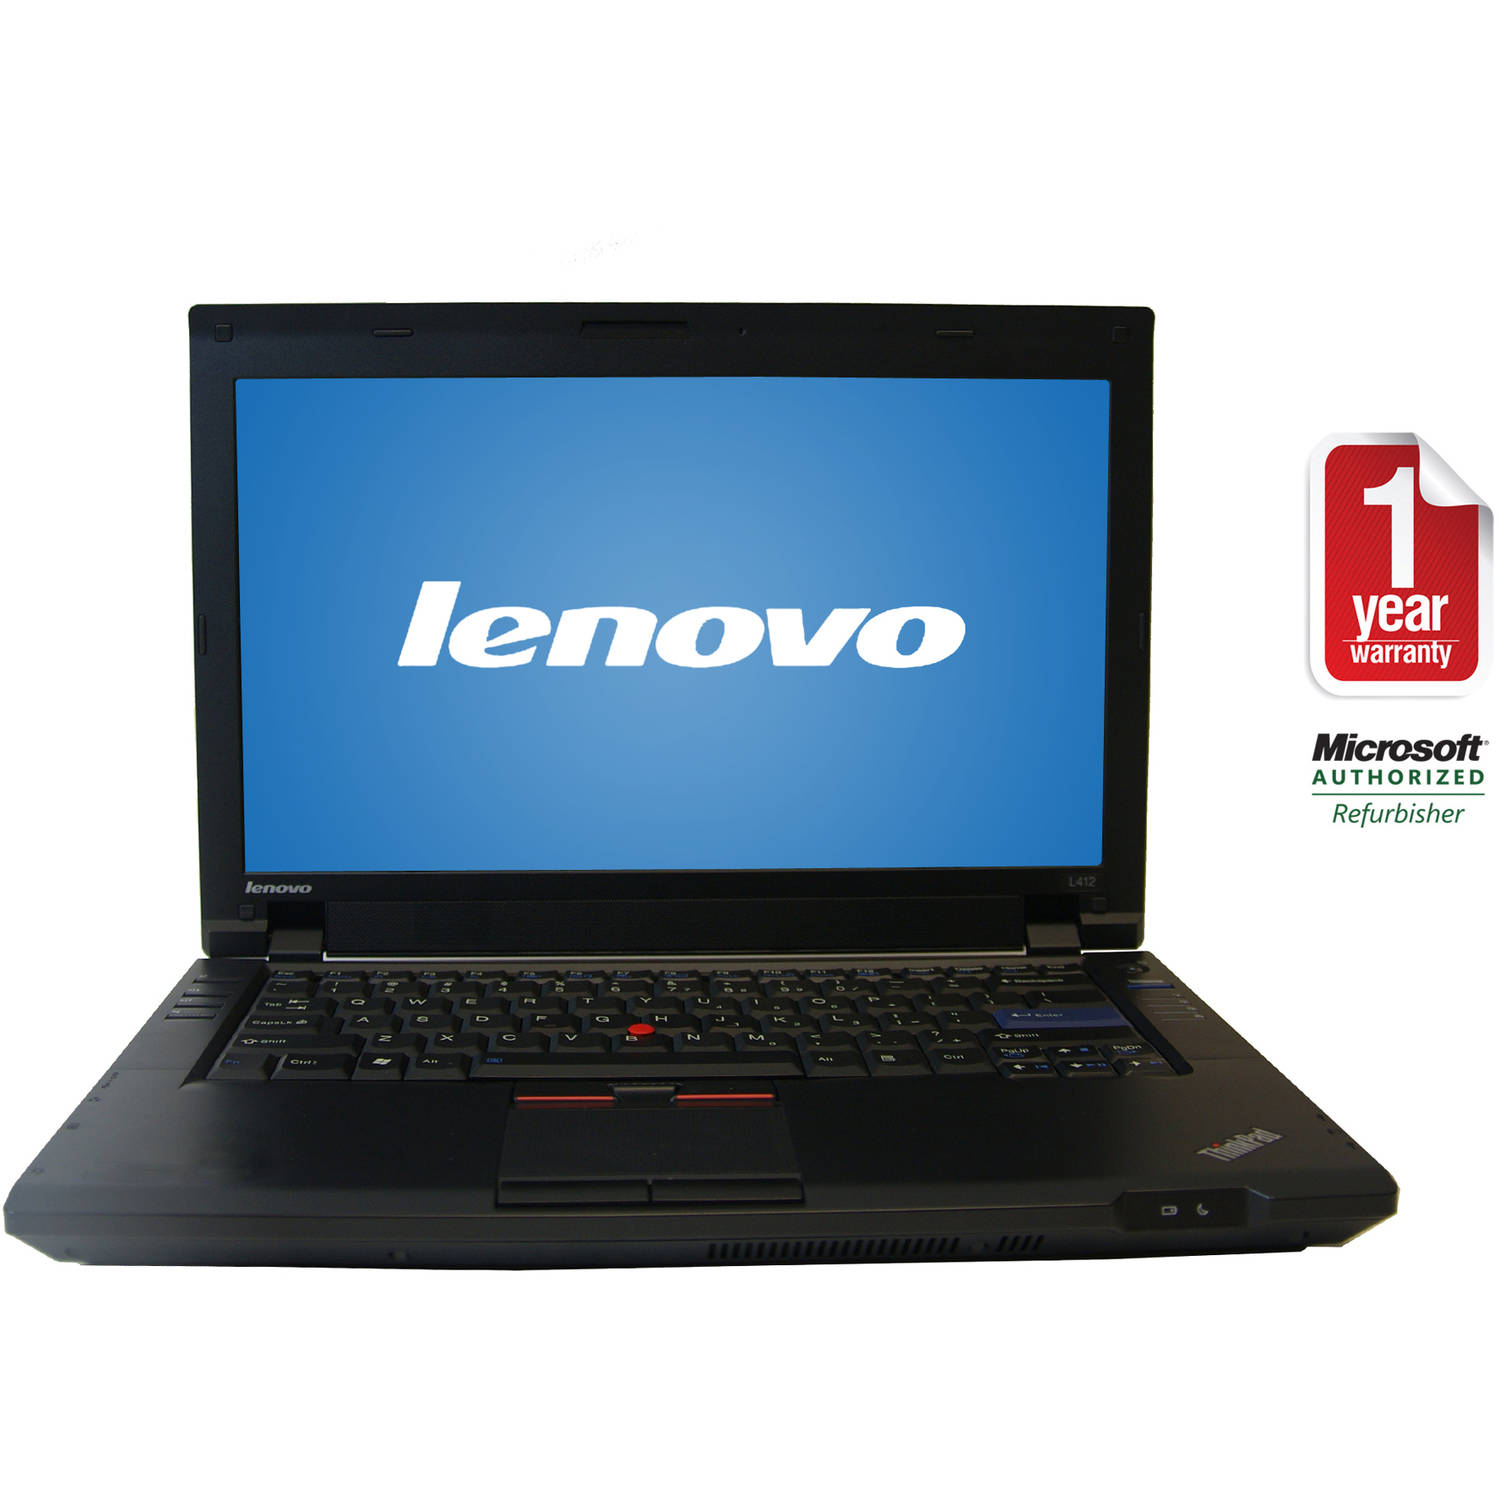 "Refurbished Lenovo 14.1"" L412 Laptop PC with Intel Core i5-520M Processor, 6GB Memory, 500GB Hard Drive and Windows 10 Home"